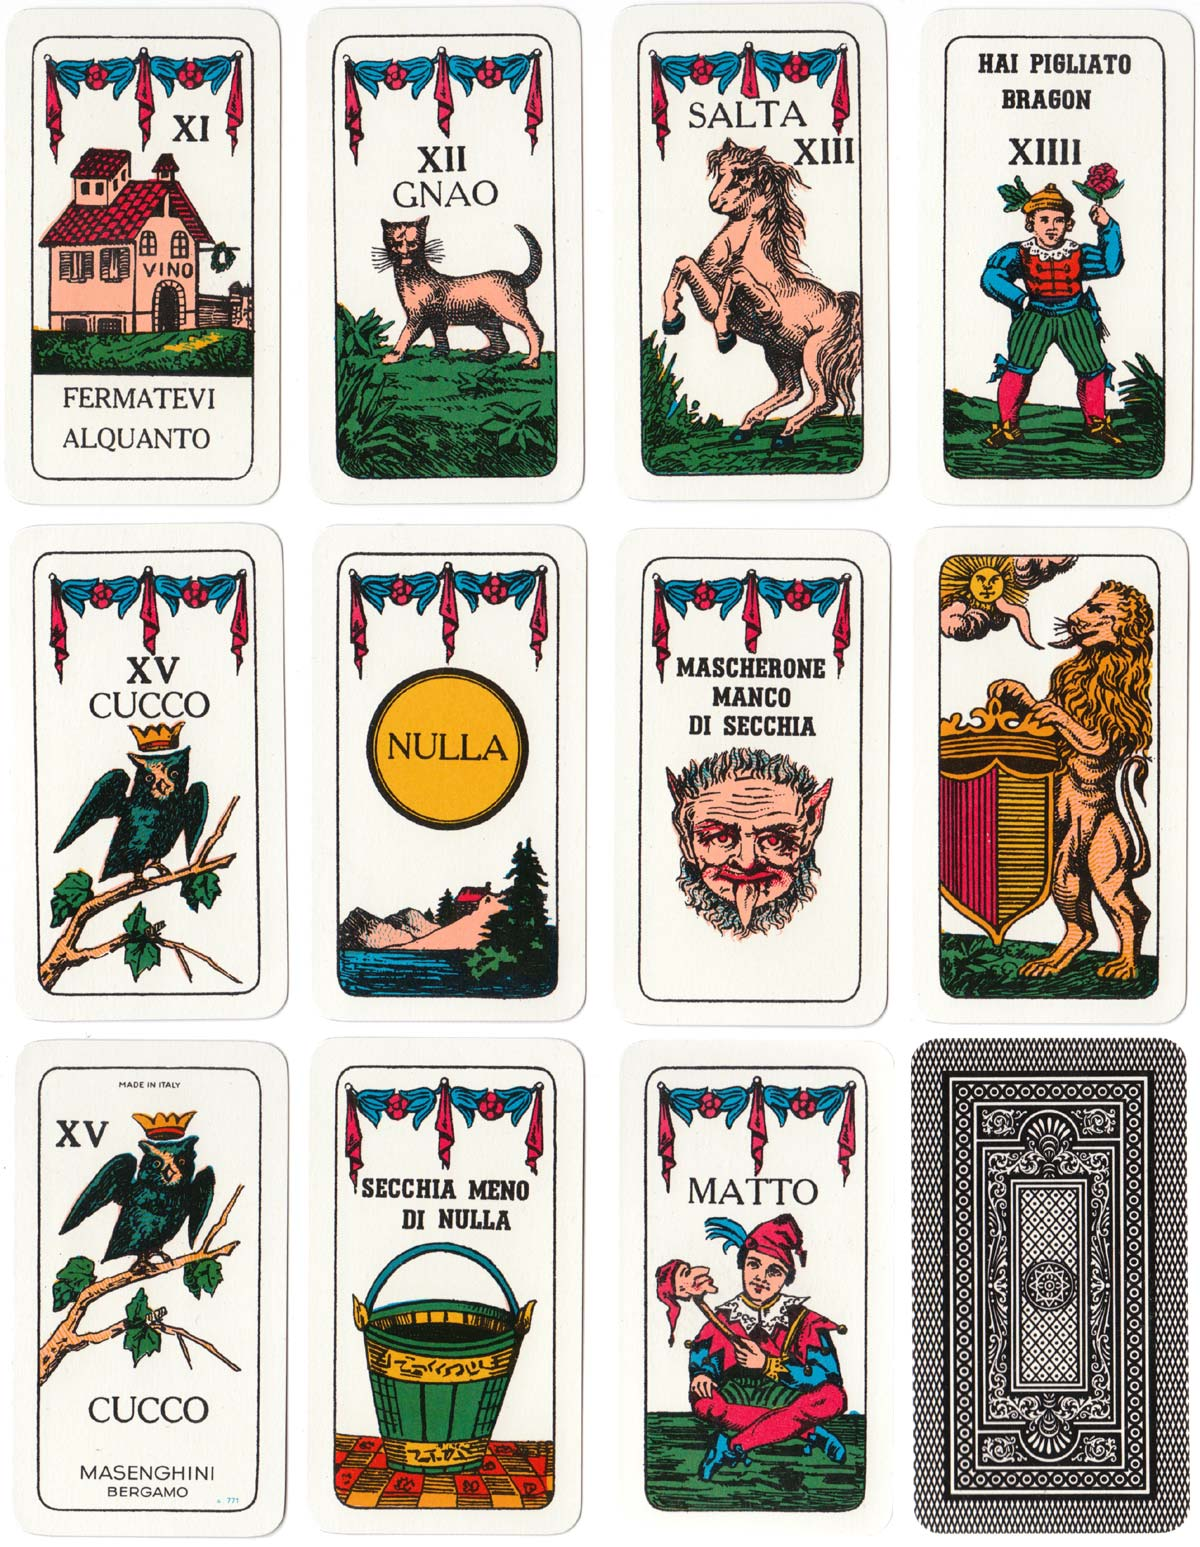 Cuccù or Cucco, an ancient Italian card game, published by Masenghini, 1979